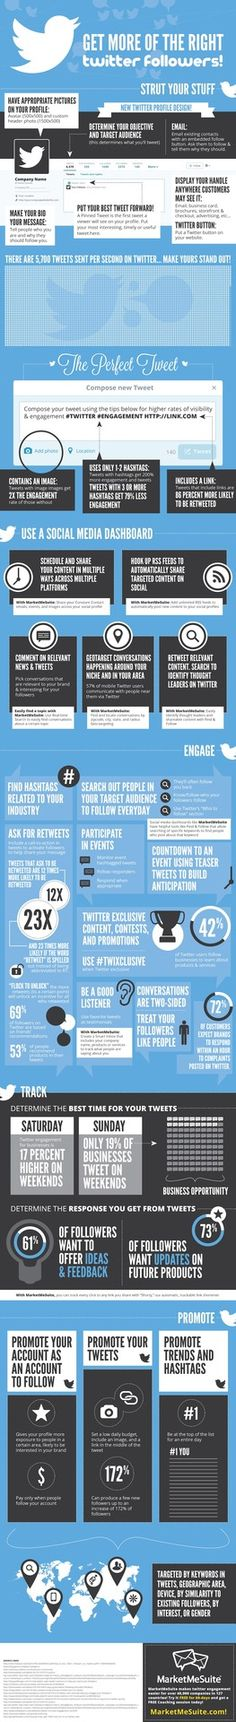 How To Get More Relevant, Quality Twitter Followers [INFOGRAPHIC] - AllTwitter